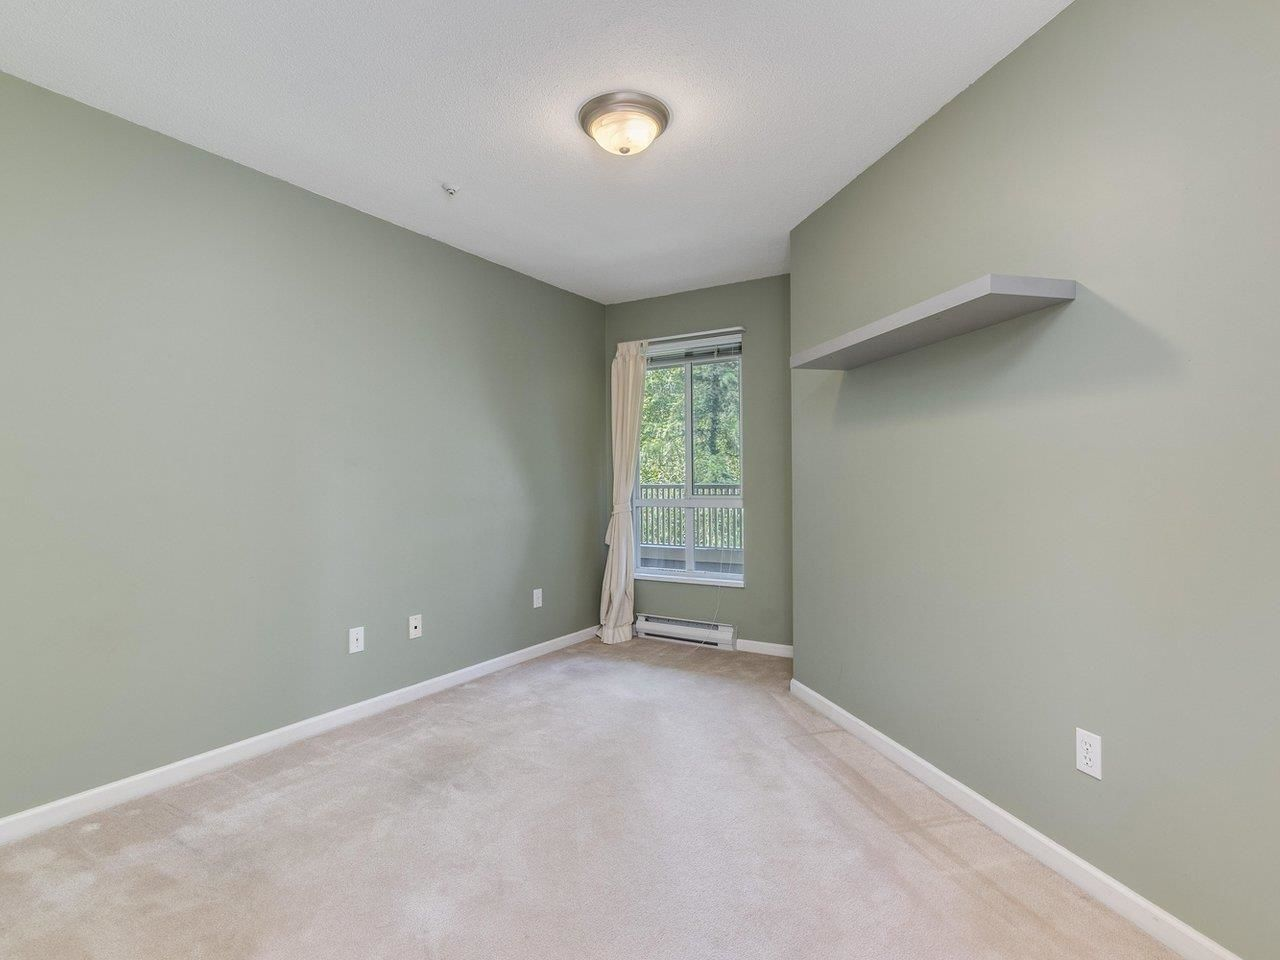 """Photo 20: Photos: 320 1252 TOWN CENTRE Boulevard in Coquitlam: Canyon Springs Condo for sale in """"The Kennedy"""" : MLS®# R2595291"""